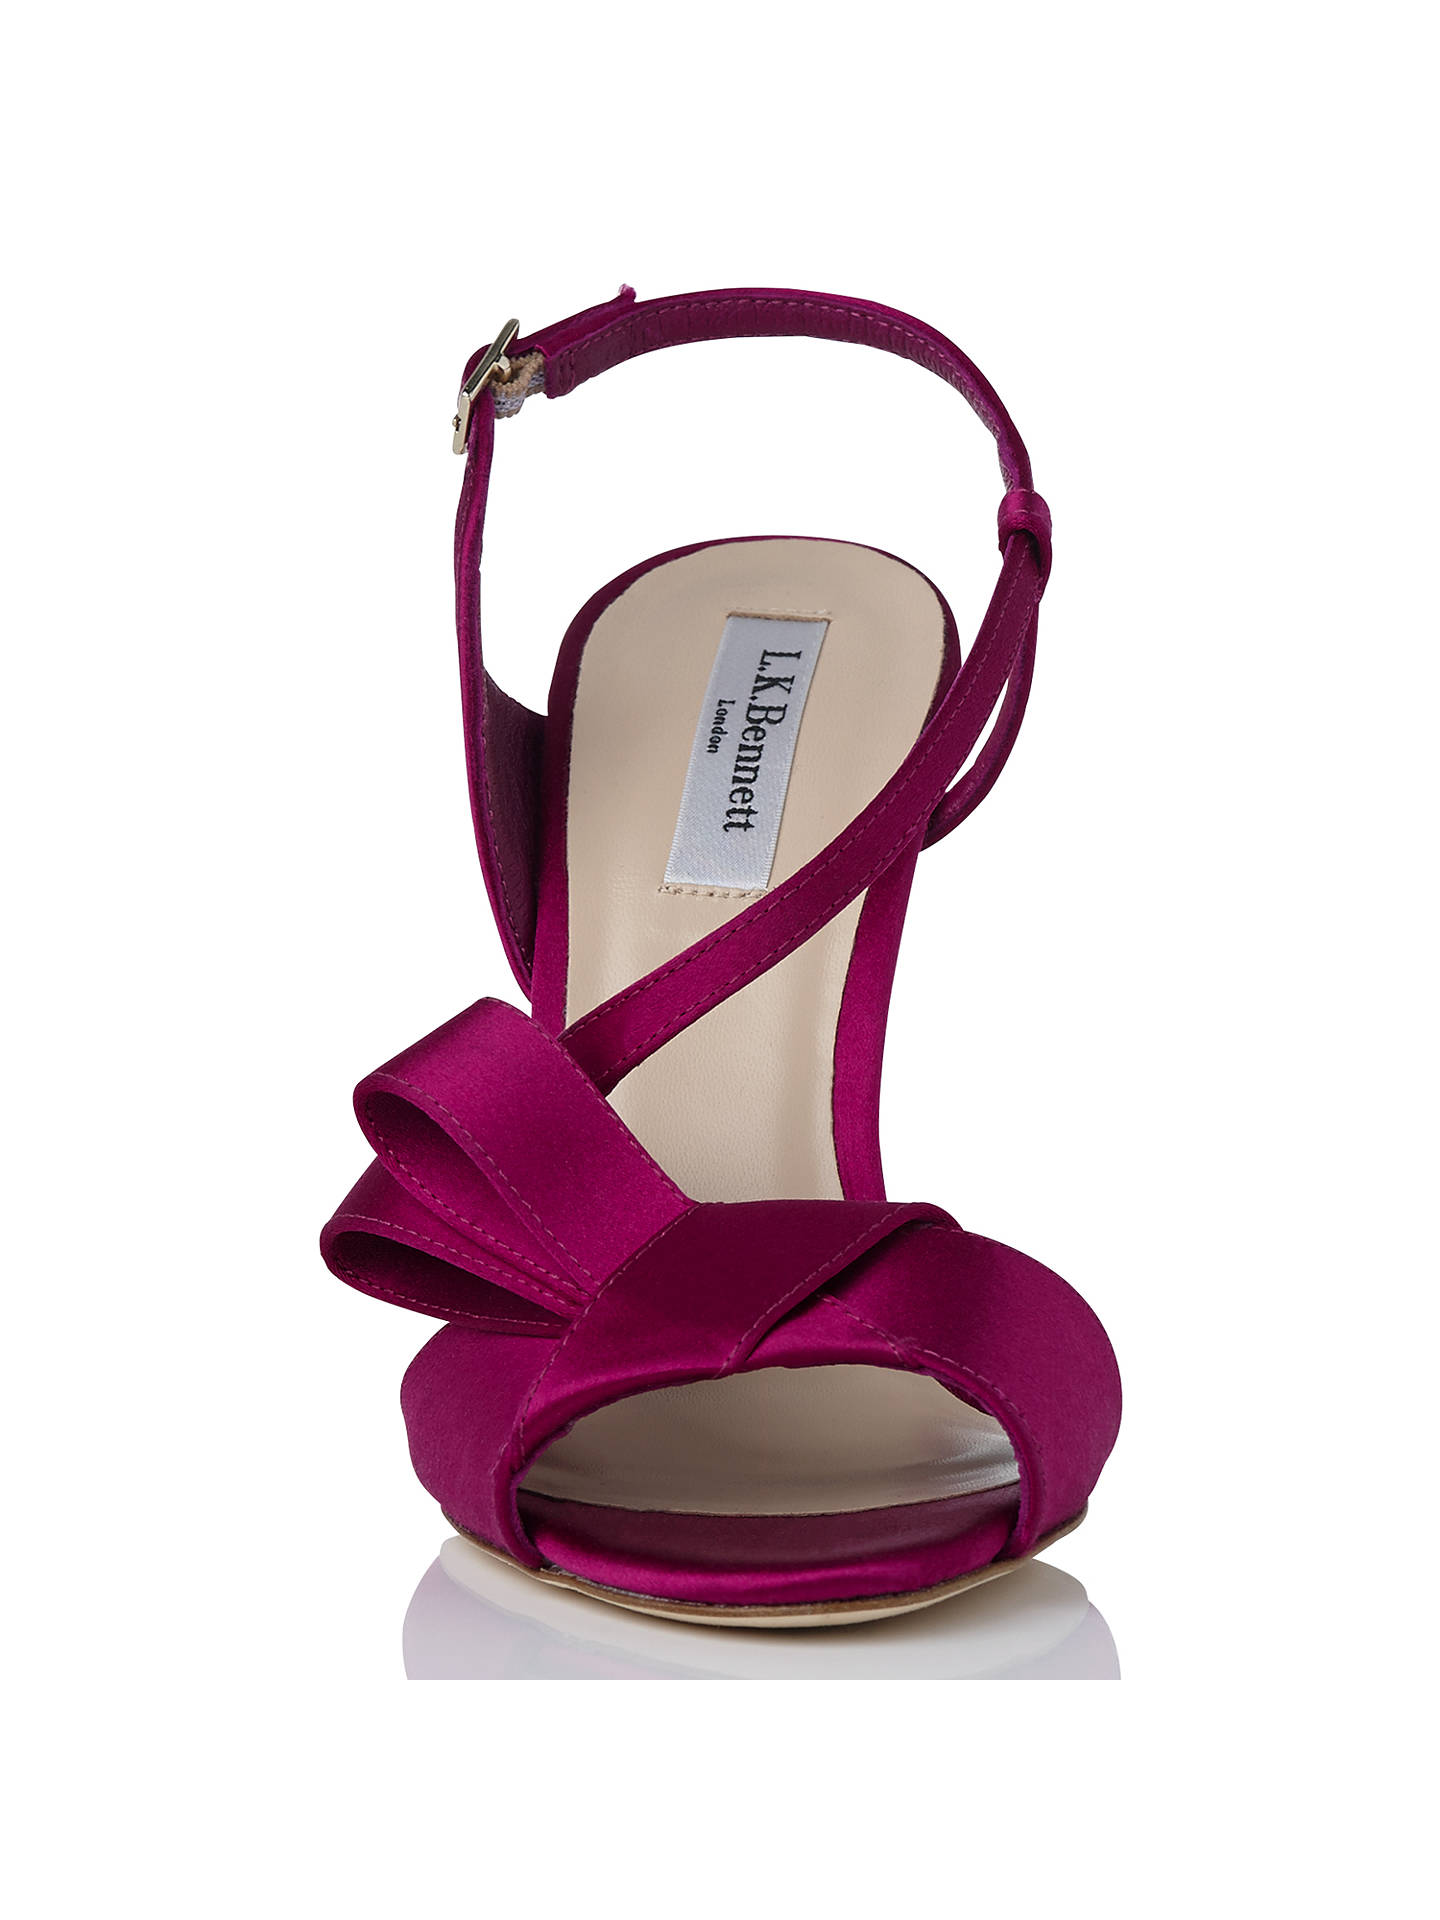 BuyL.K. Bennett Erica Formal High Heel Sandals, Fuchsia, 4 Online at johnlewis.com